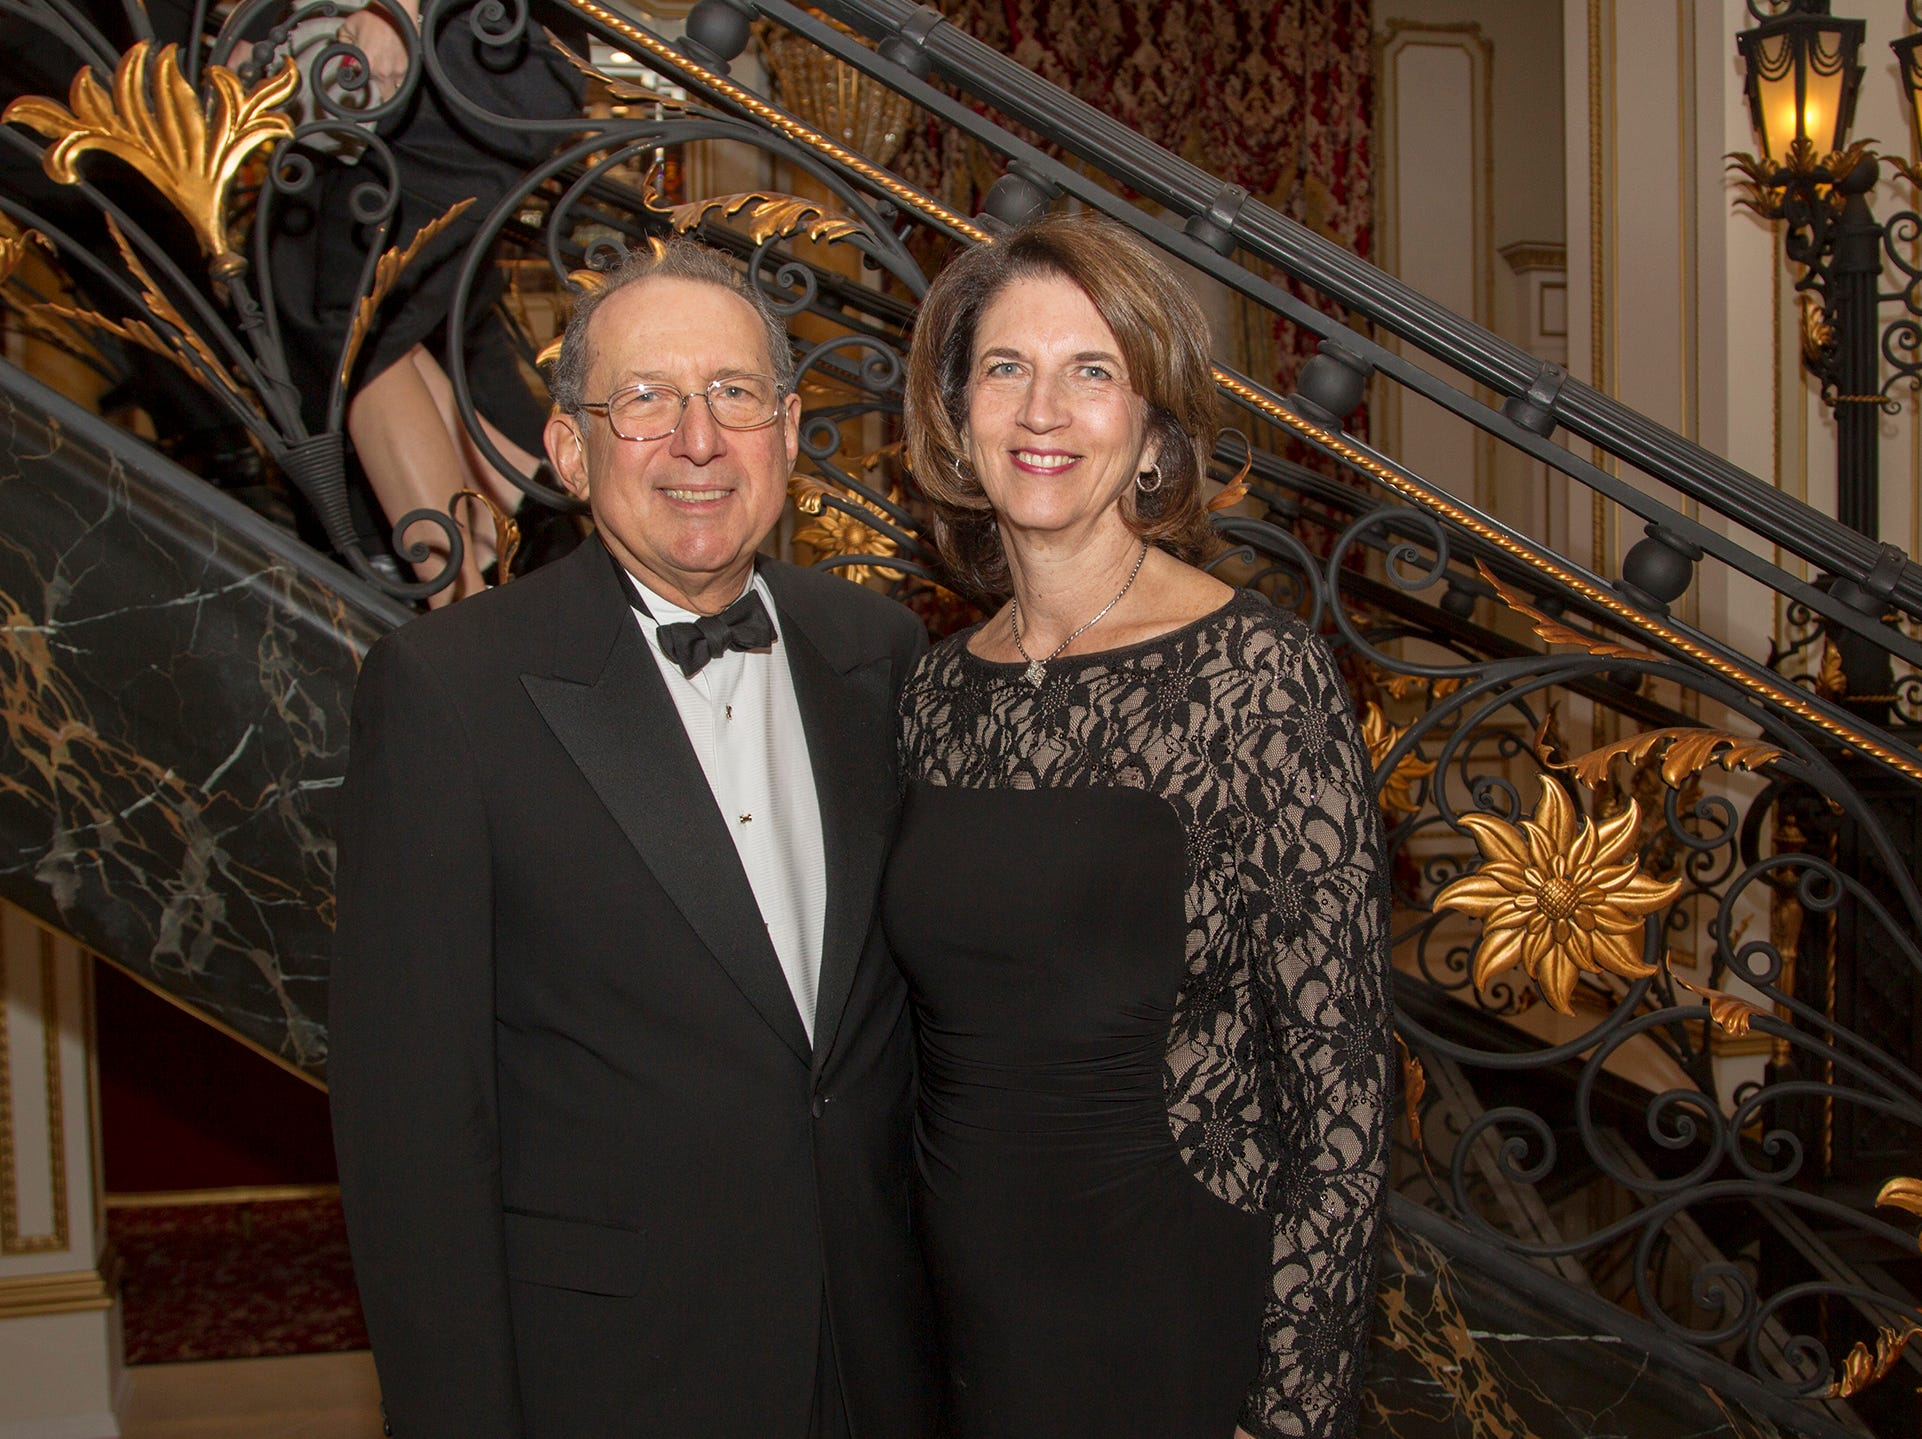 FRank and Elizabeth Krupp. The 72nd Annual Valley Ball gala at The Legacy Castle in Pompton Plains. 11/16/2018